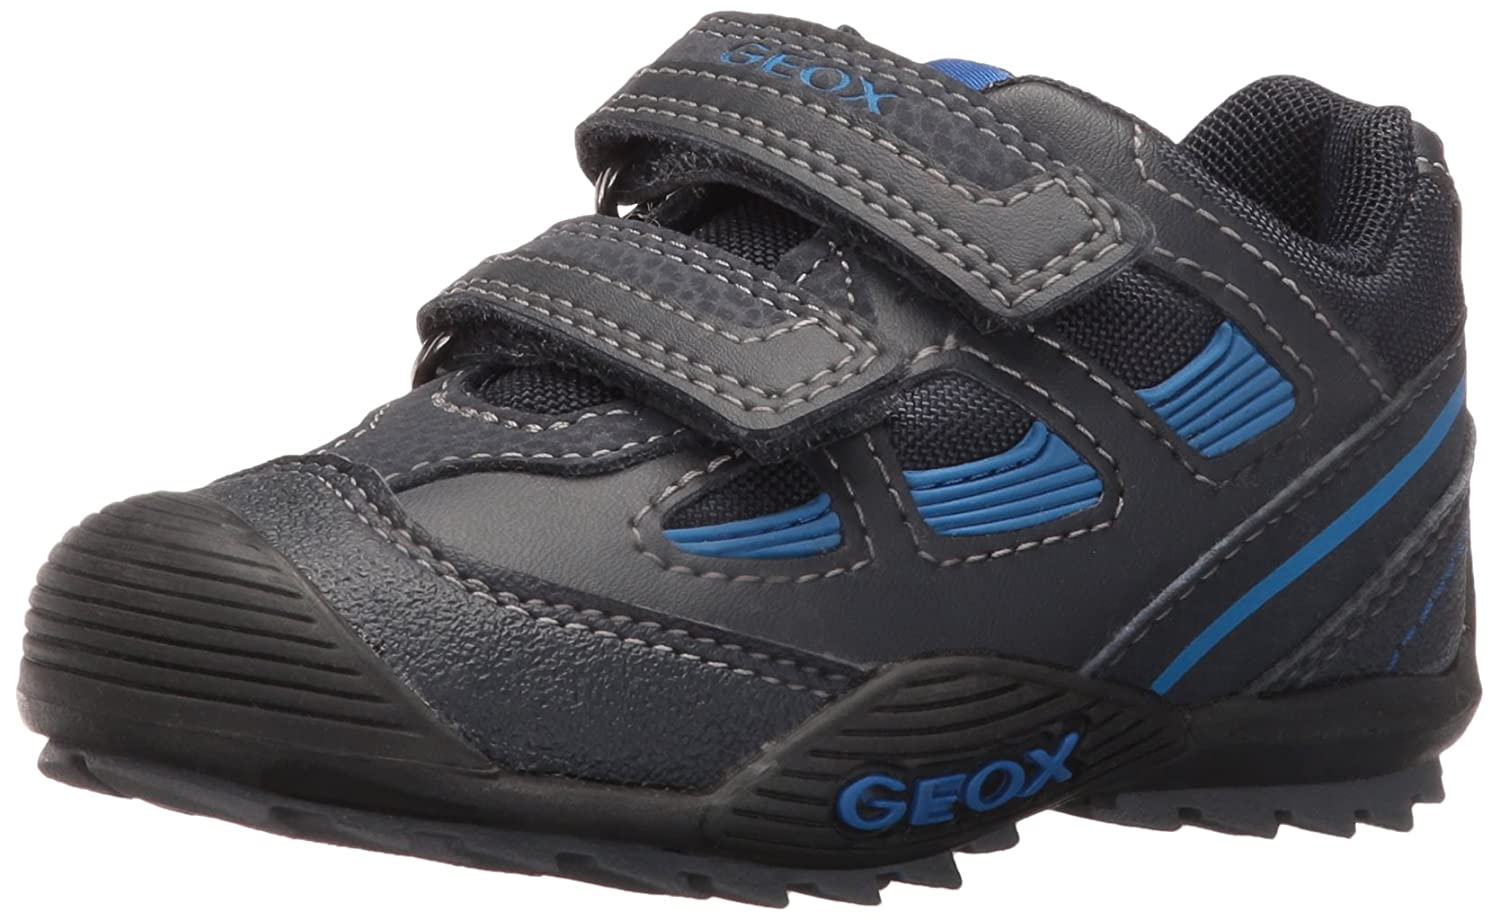 Geox Turnschuhe Athletic Schuhe Up To 75% Off | Schwarz